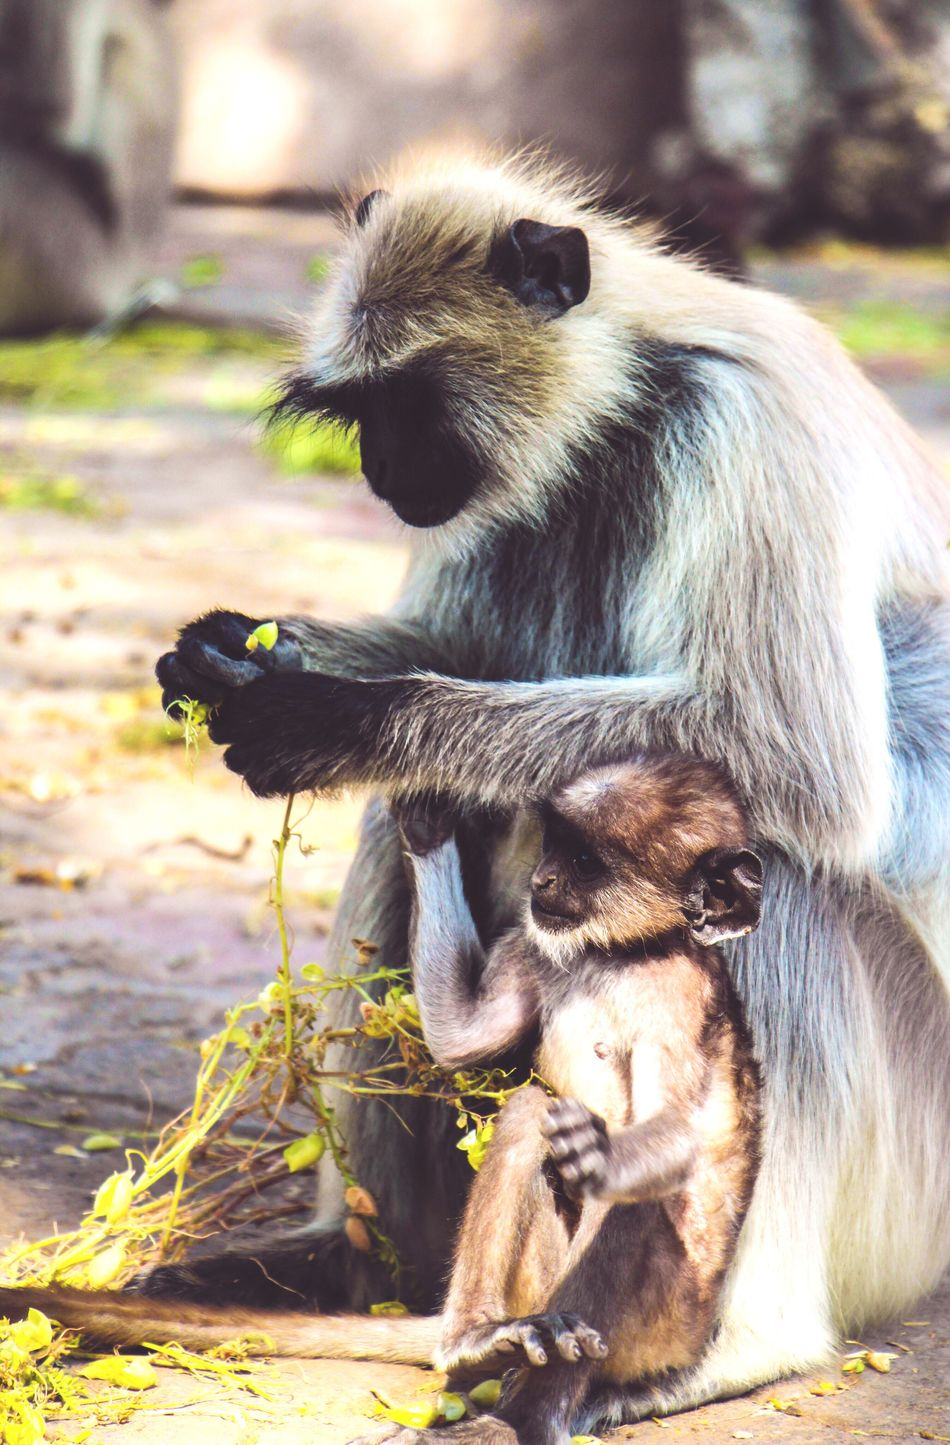 Mothers' love is everywhere, doesn't matter human or animal Animal Themes Mammal Animals In The Wild Animal Wildlife Togetherness No People Day Outdoors Nature Close-up Monkey (null)Love Motherlove Mother Child